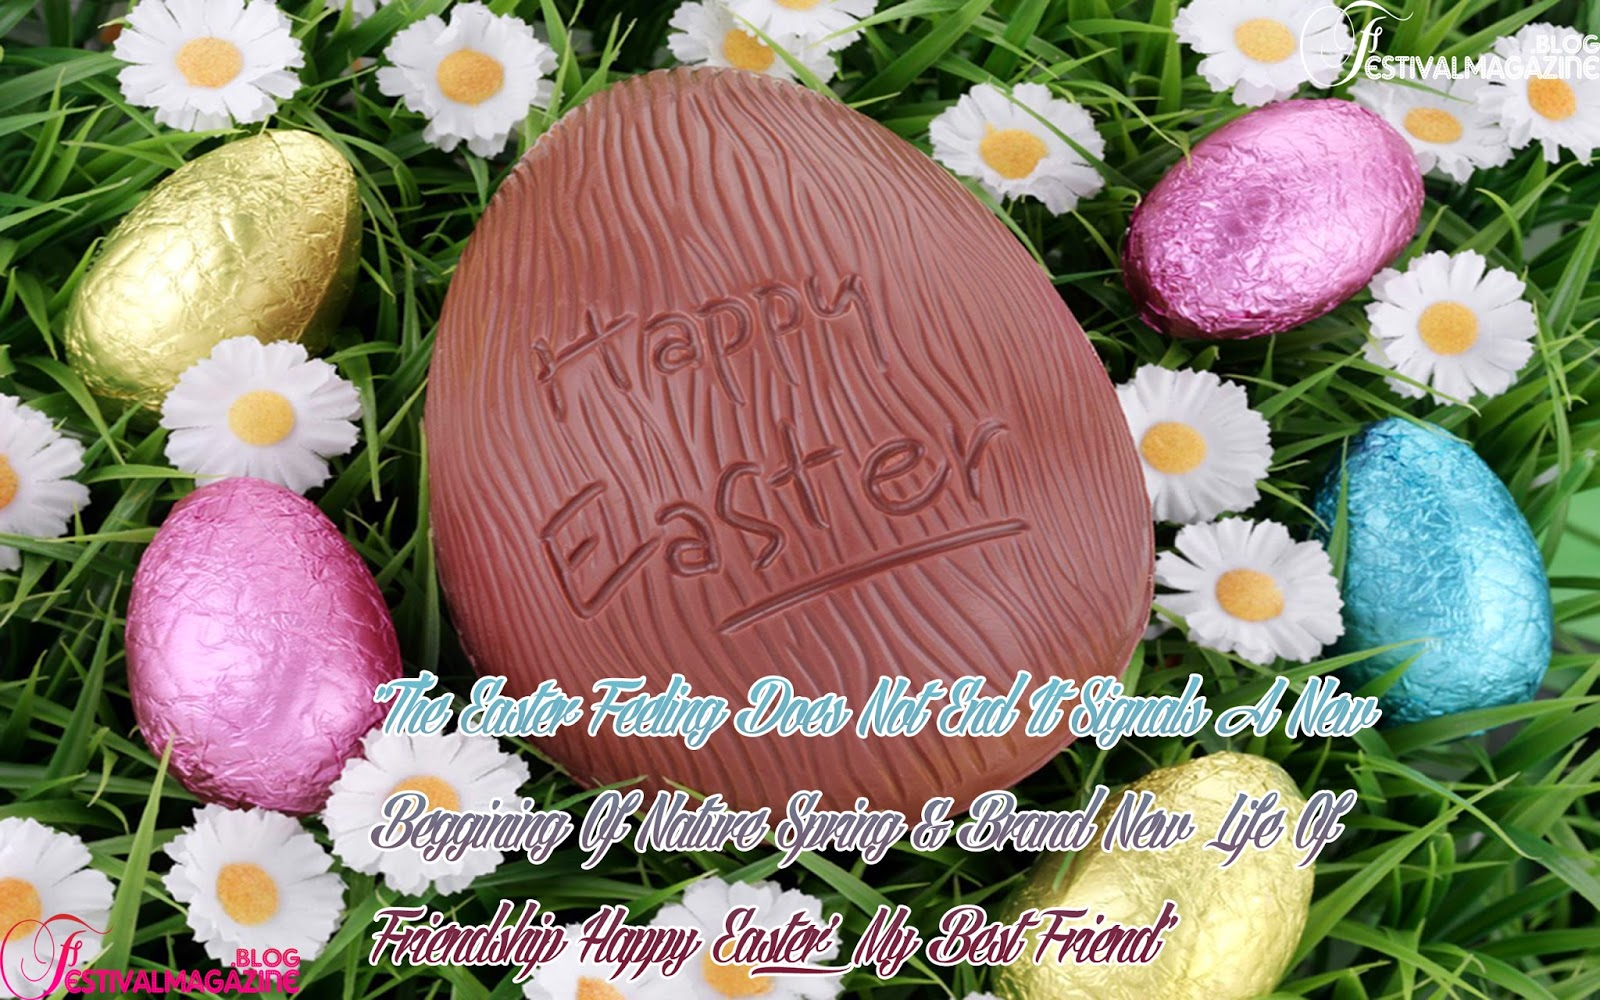 Festival Magazine Happy Easter Day Event Wallpapers With Greetings